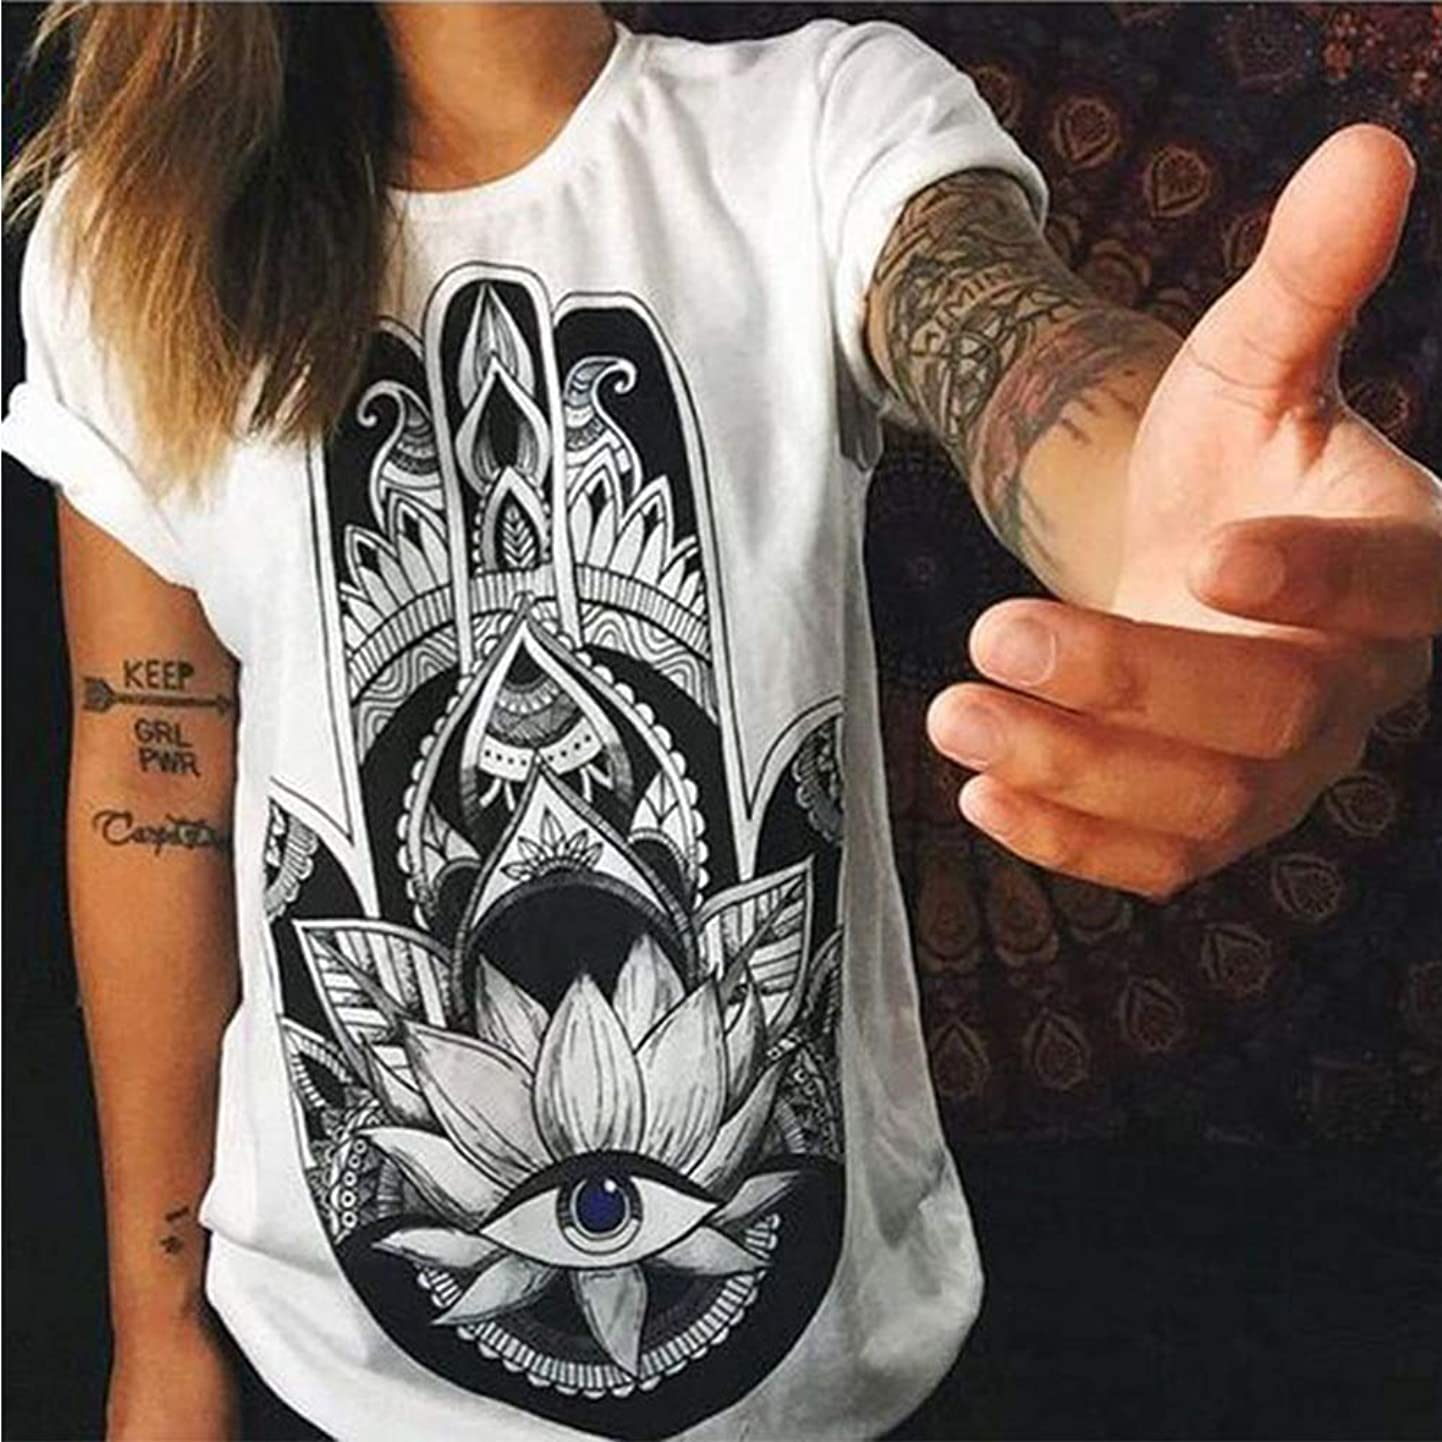 Women's t-shirt Women's T-shirt street fashion Slim summer black white T-shirt women's trend printing casual Slim women's shirt T-shirt increase small size Suitable for outdoor leisure sports fitness yzykltdsuqa9